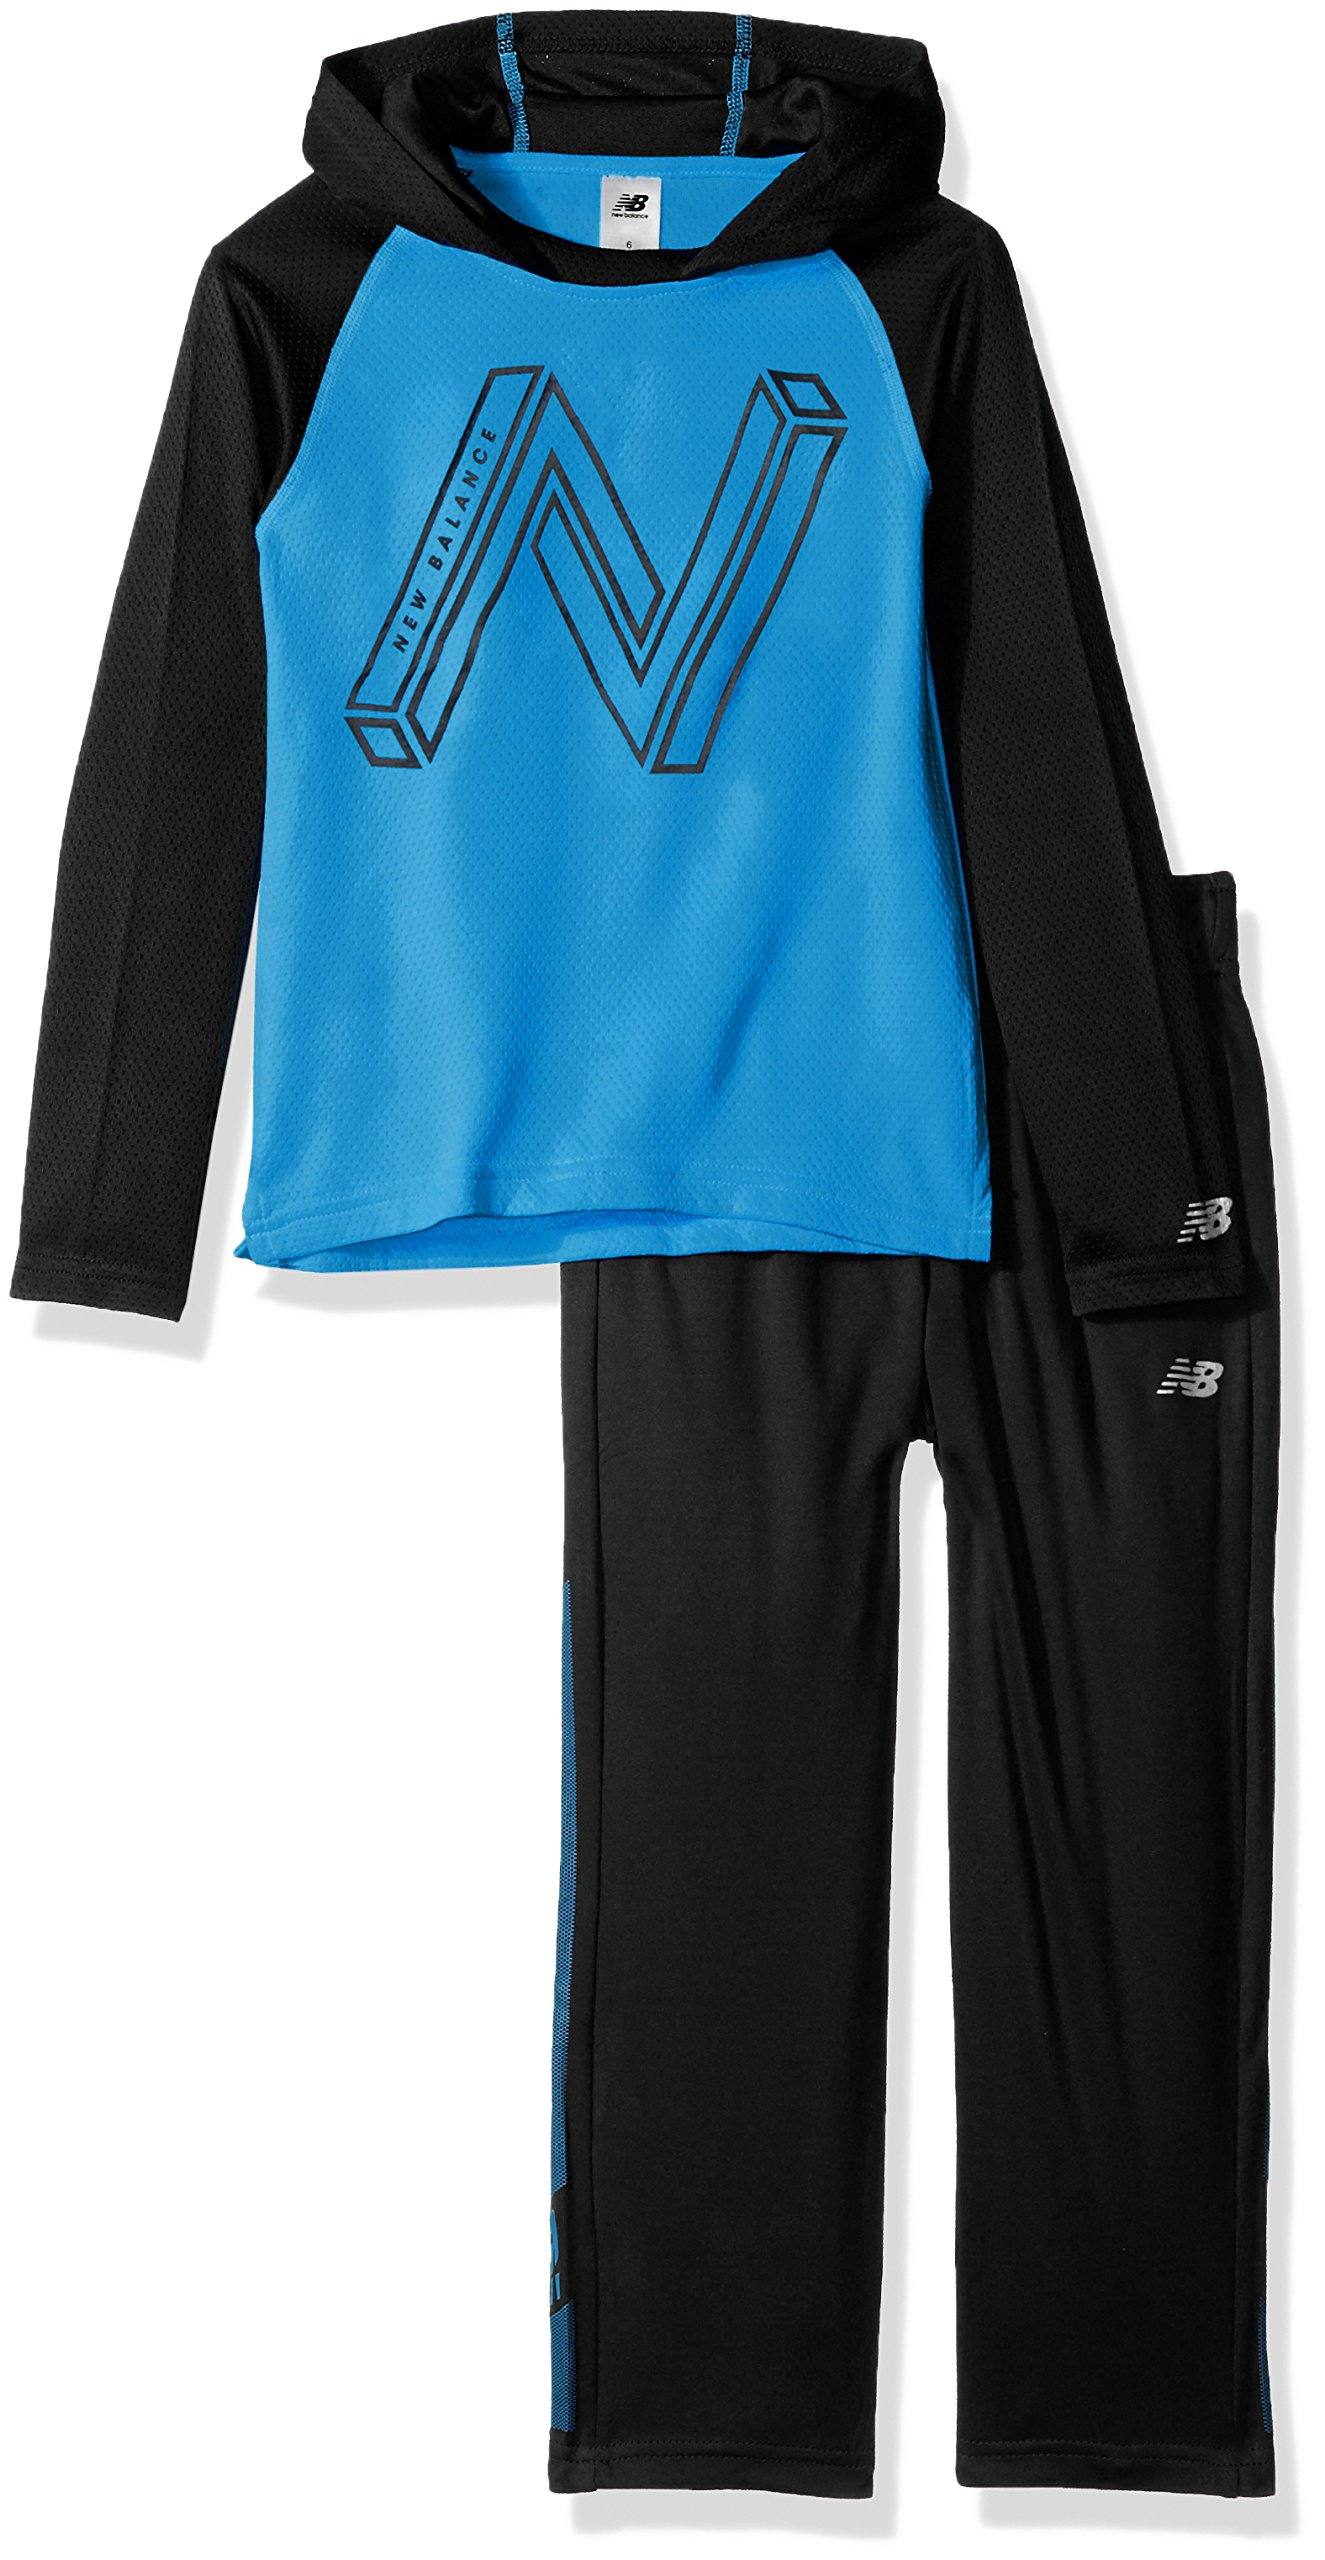 New Balance Boys' Toddler Long Sleeve Hooded Top and Pant Set, Bolt/Black, 4T